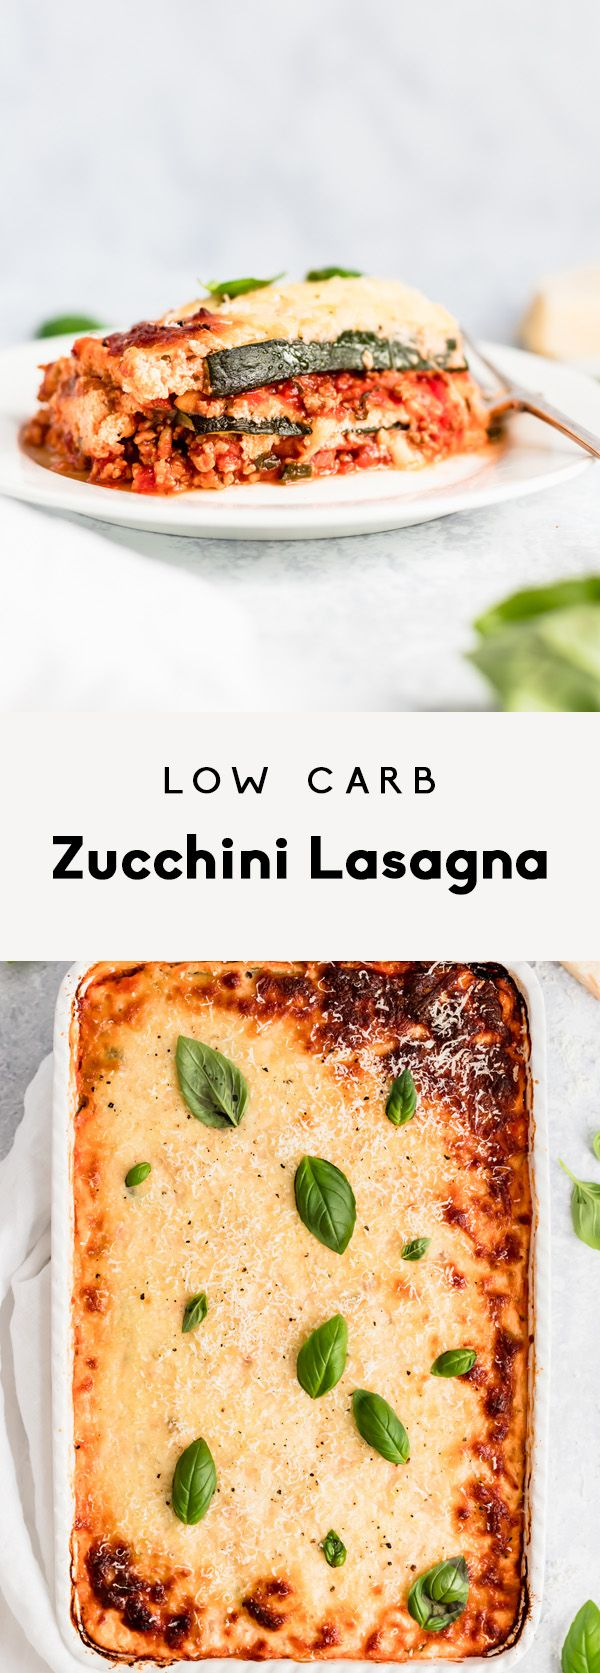 Low Carb Zucchini Lasagna with Spicy Turkey Meat Sauce A healthy, low carb zucchini lasagna with a flavorful turkey meat sauce. Packed with veggies, protein and delicious flavor. This will be your new favorite freezer-friendly meal!